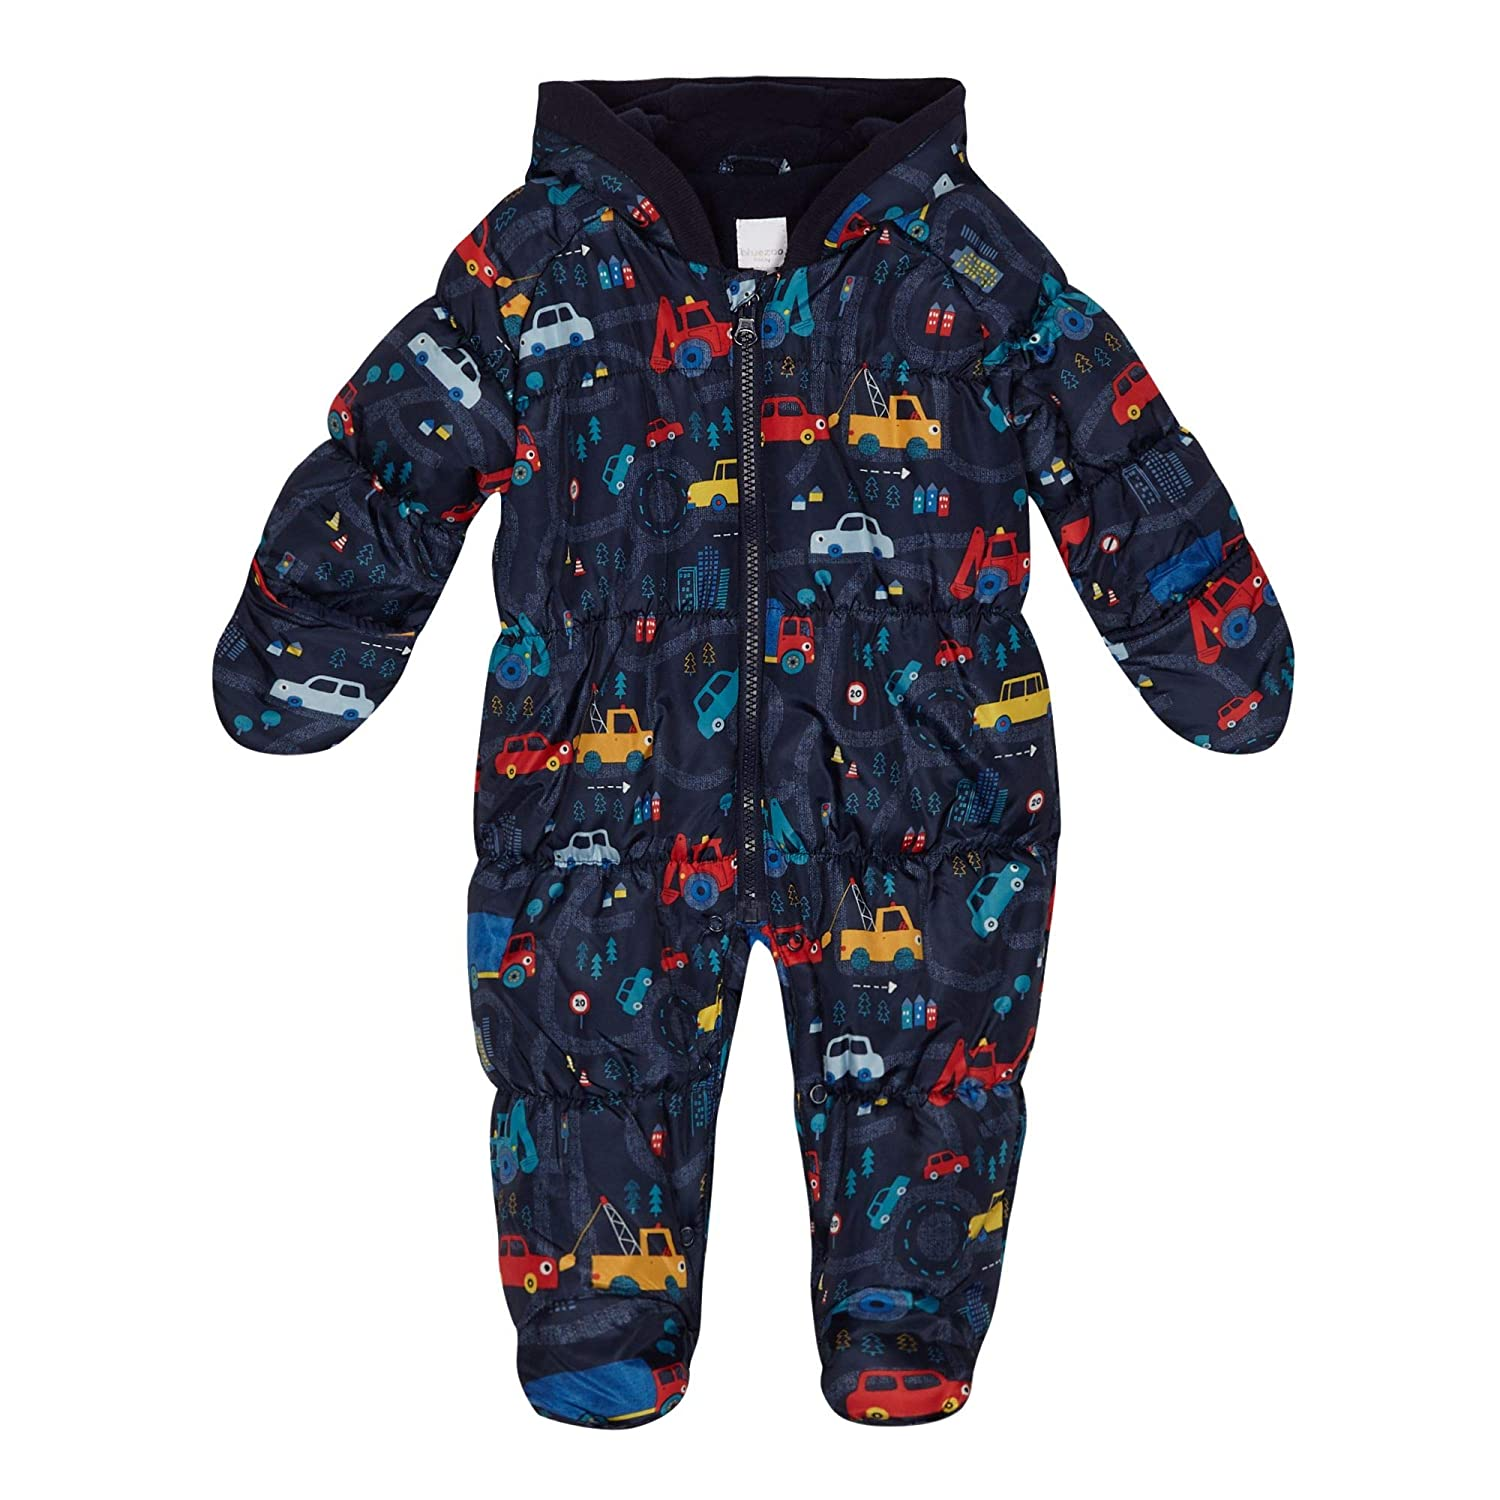 bluezoo Kids 'Baby Boys' Navy Vehicle Print Snowsuit